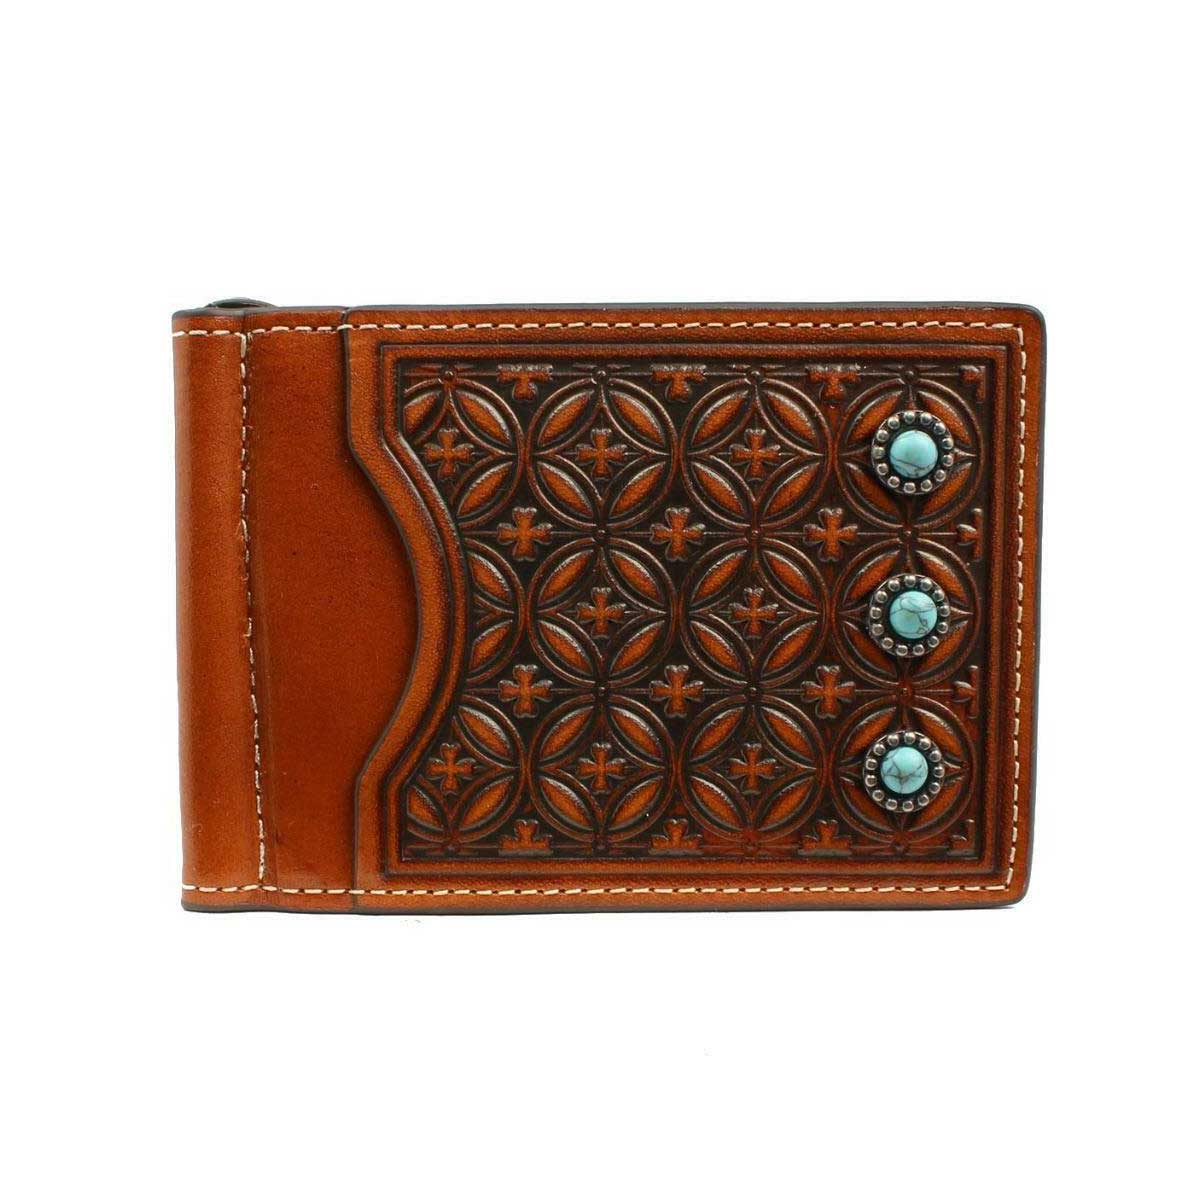 M & F Western Nocona Embossed Turquoise Stone Money Clip Wallet - Dark Tan